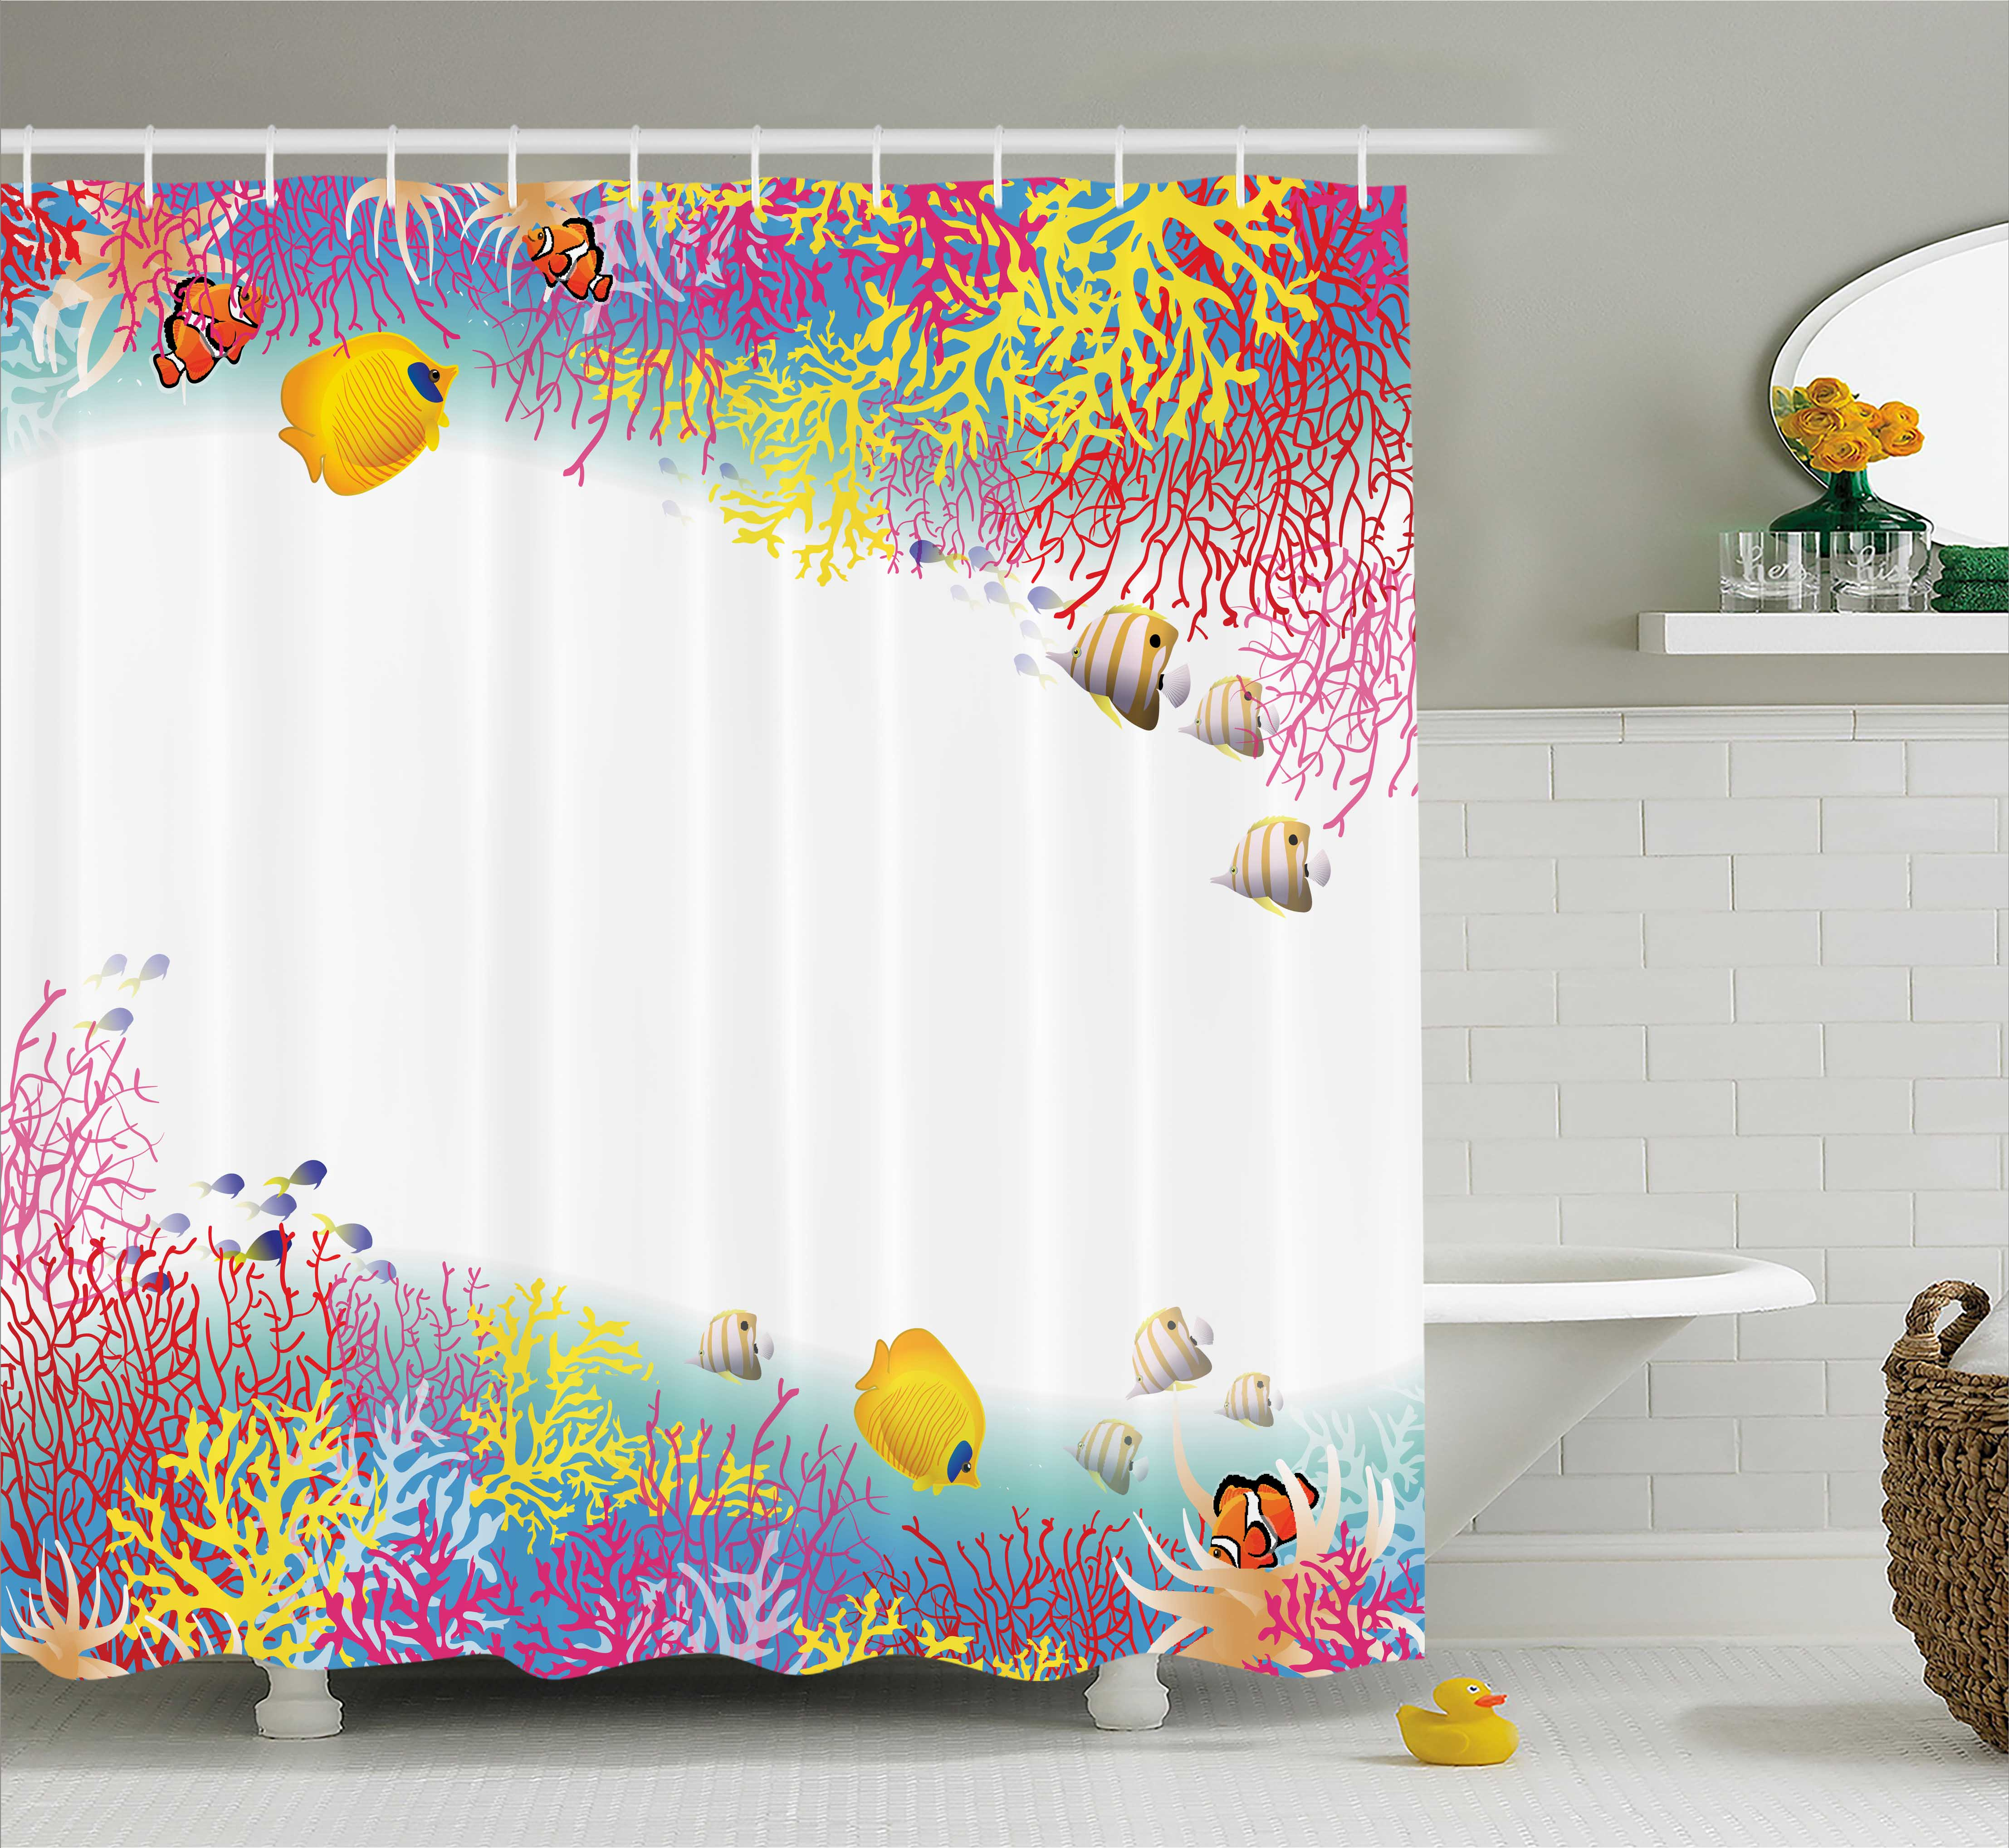 Farm House Decor Shower Curtain, Aquatic Nautical Illustration of Deep Underwater World Life Animals with Corals, Fabric Bathroom Set with Hooks, 69W X 70L Inches, Multi, by Ambesonne